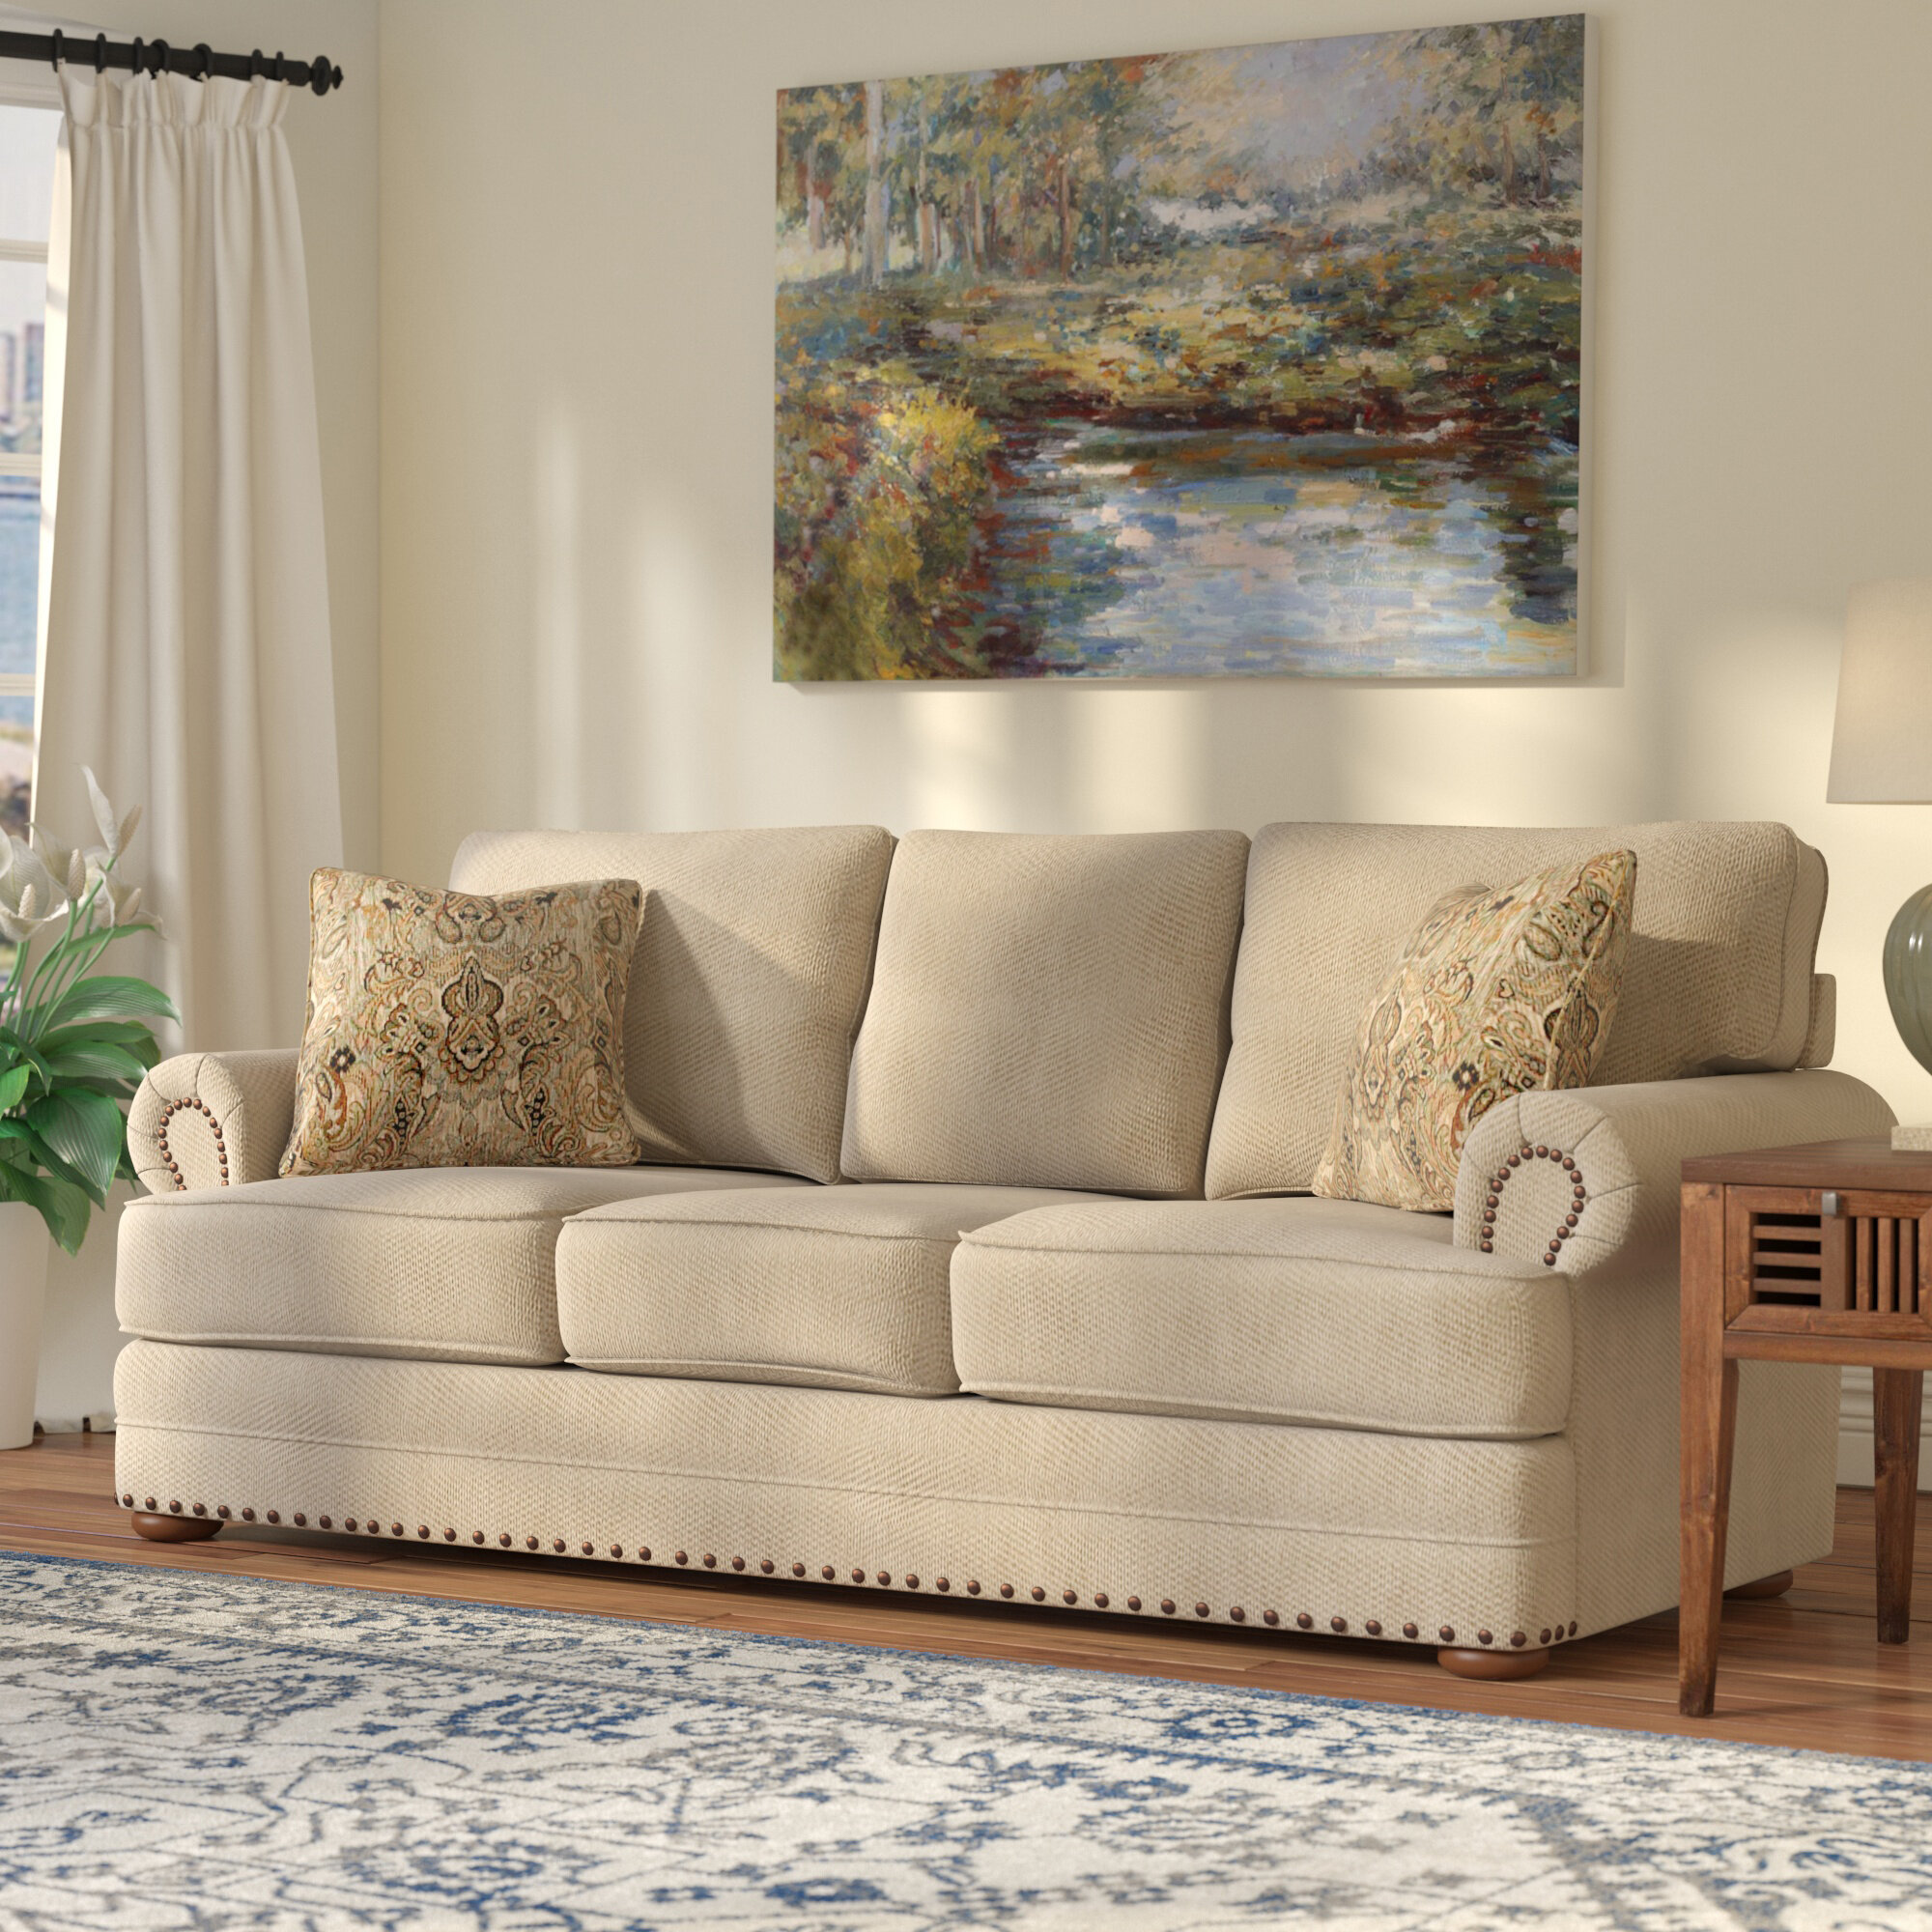 Laurel Foundry Modern Farmhouse Bernard Sofa U0026 Reviews | Wayfair